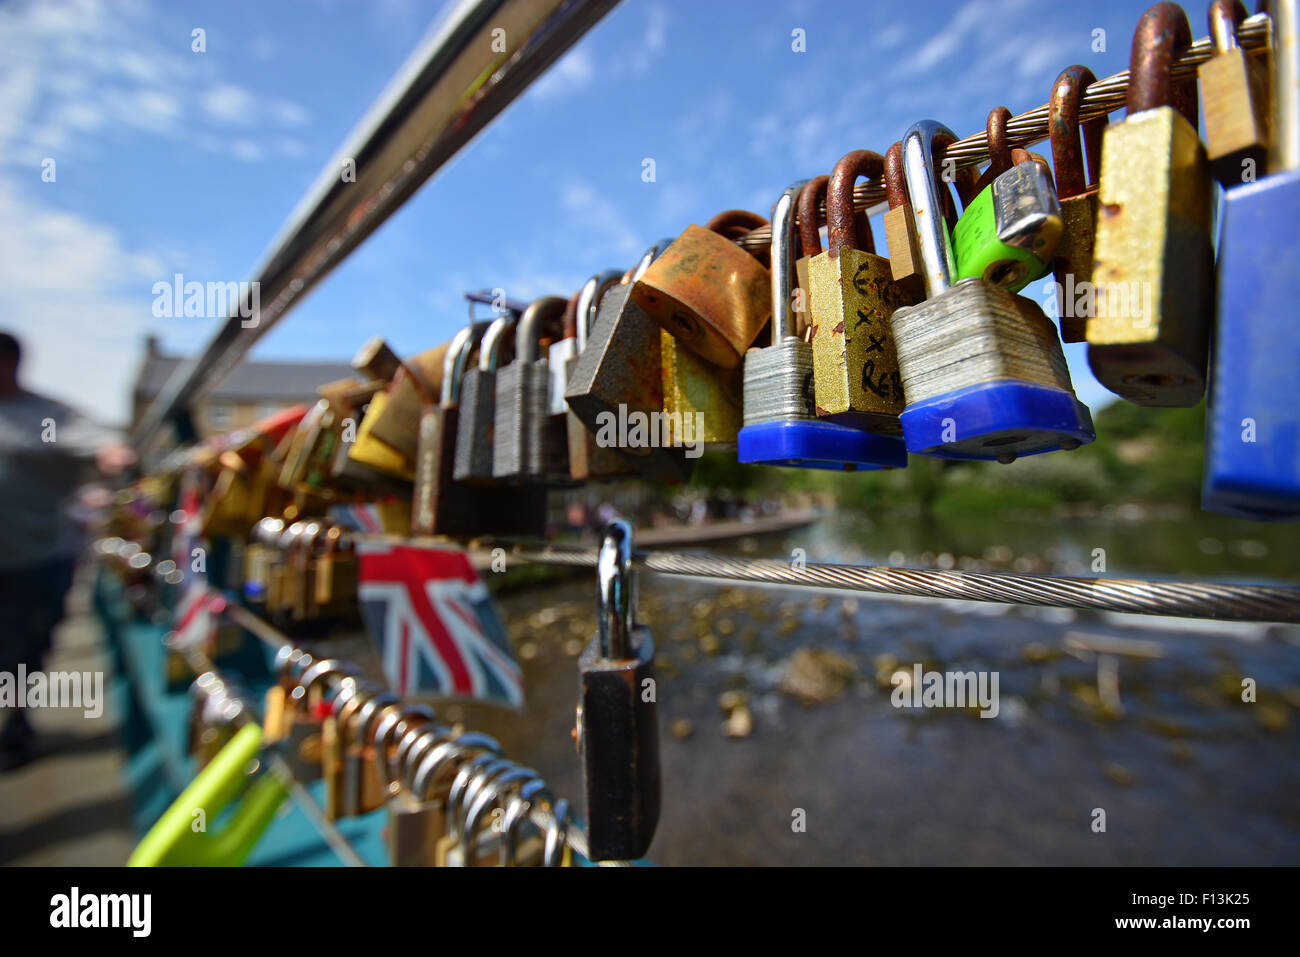 Colourful padlocks inscribed with lovers initials attached to a bridge in the town of Bakewell, Derbyshire. - Stock Image